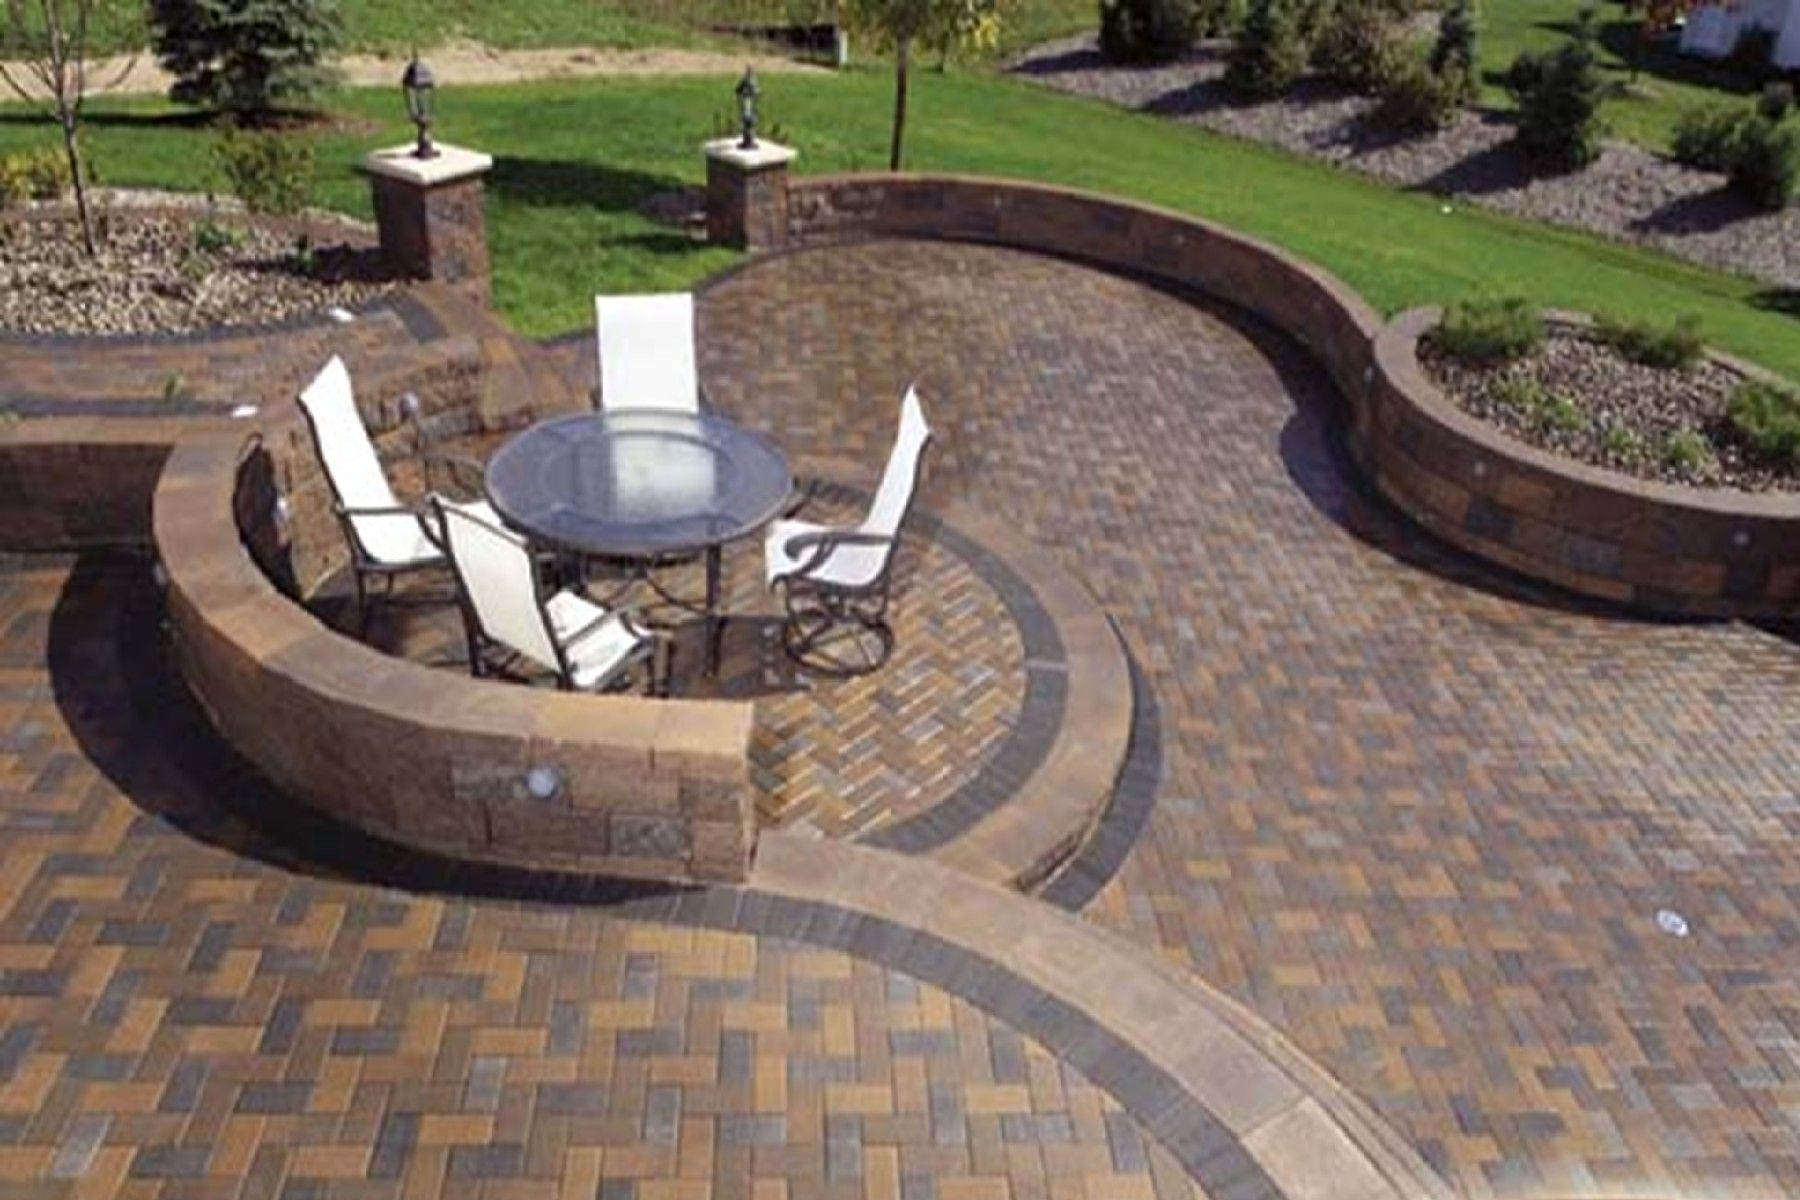 Mesmerizing Concrete Patio Designs Layouts Also Vintage Style Metal Outdoor  Chairs And Large Round Garden Table With Clear Glass Top Above Permeable ...